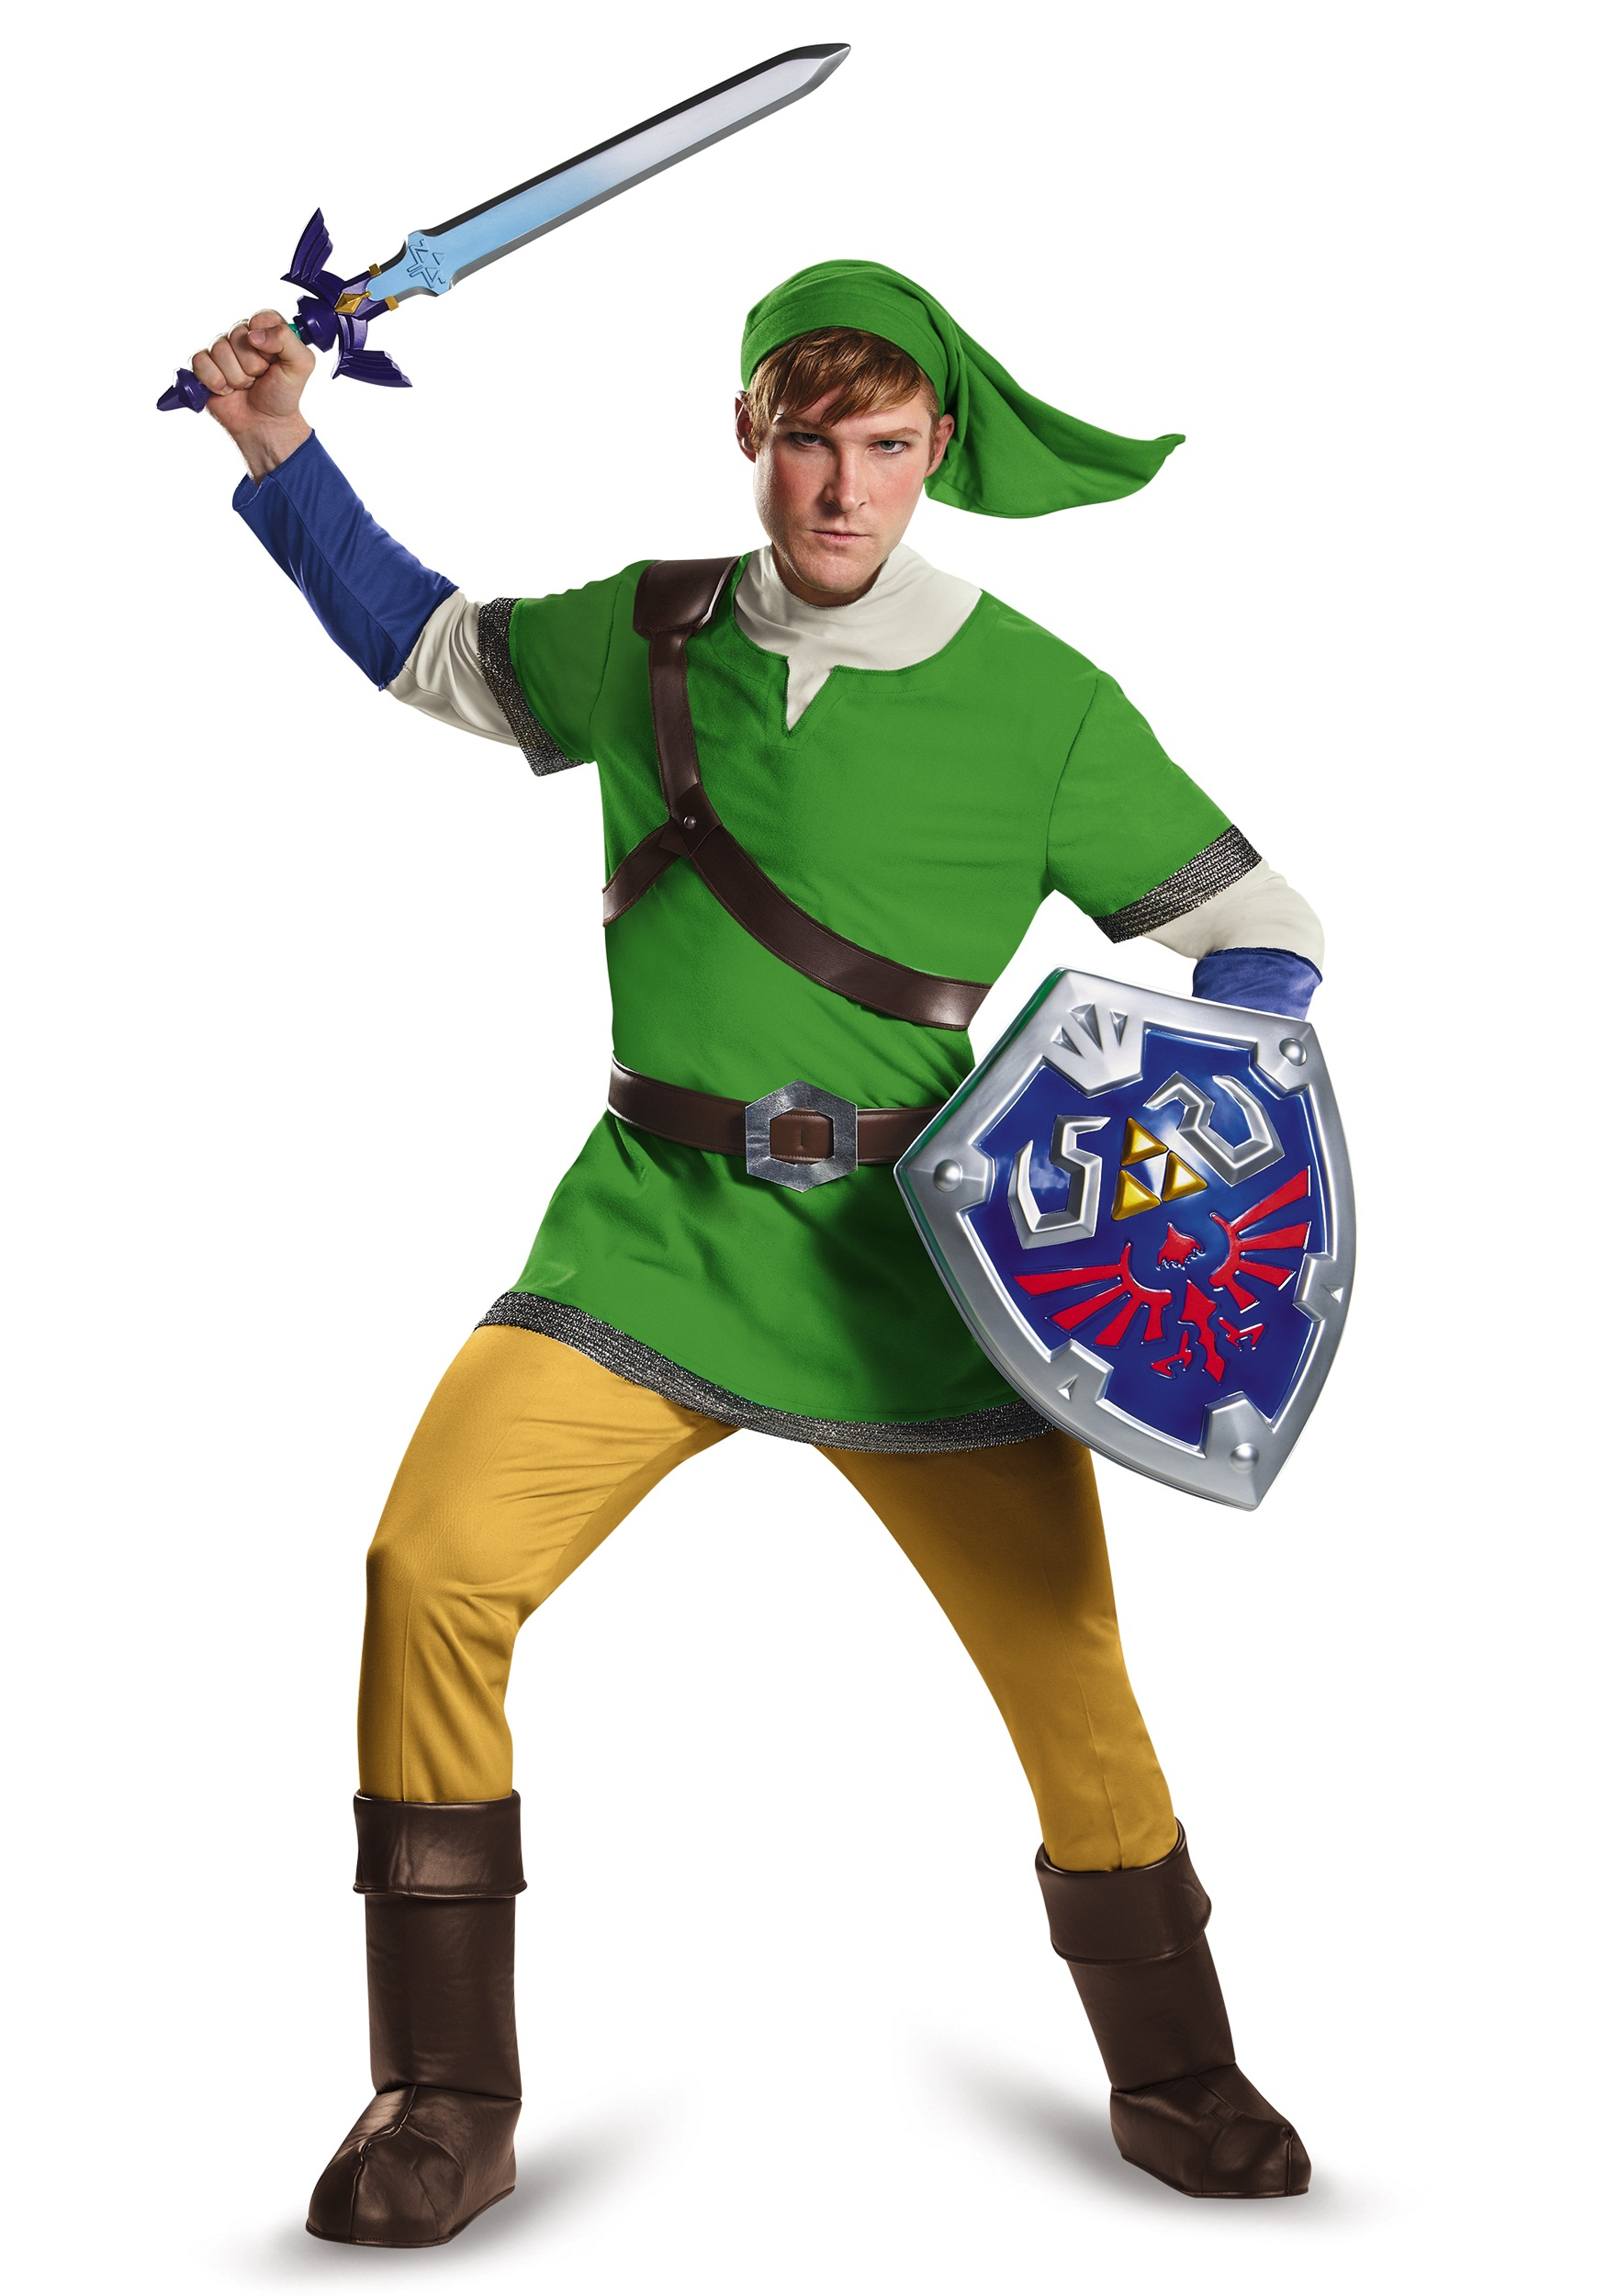 Young Link Childhood Heroes Skin Contest additionally Unreleased Zelda Amiibo Unlock Special Costumes In Breath Of The Wild And You Can Already Get Them furthermore Mejores Videojuegos Con Perros 131076 further Deluxe Adult Link Costume additionally Ocarina Xun 6 Hole. on ocarina of time bow